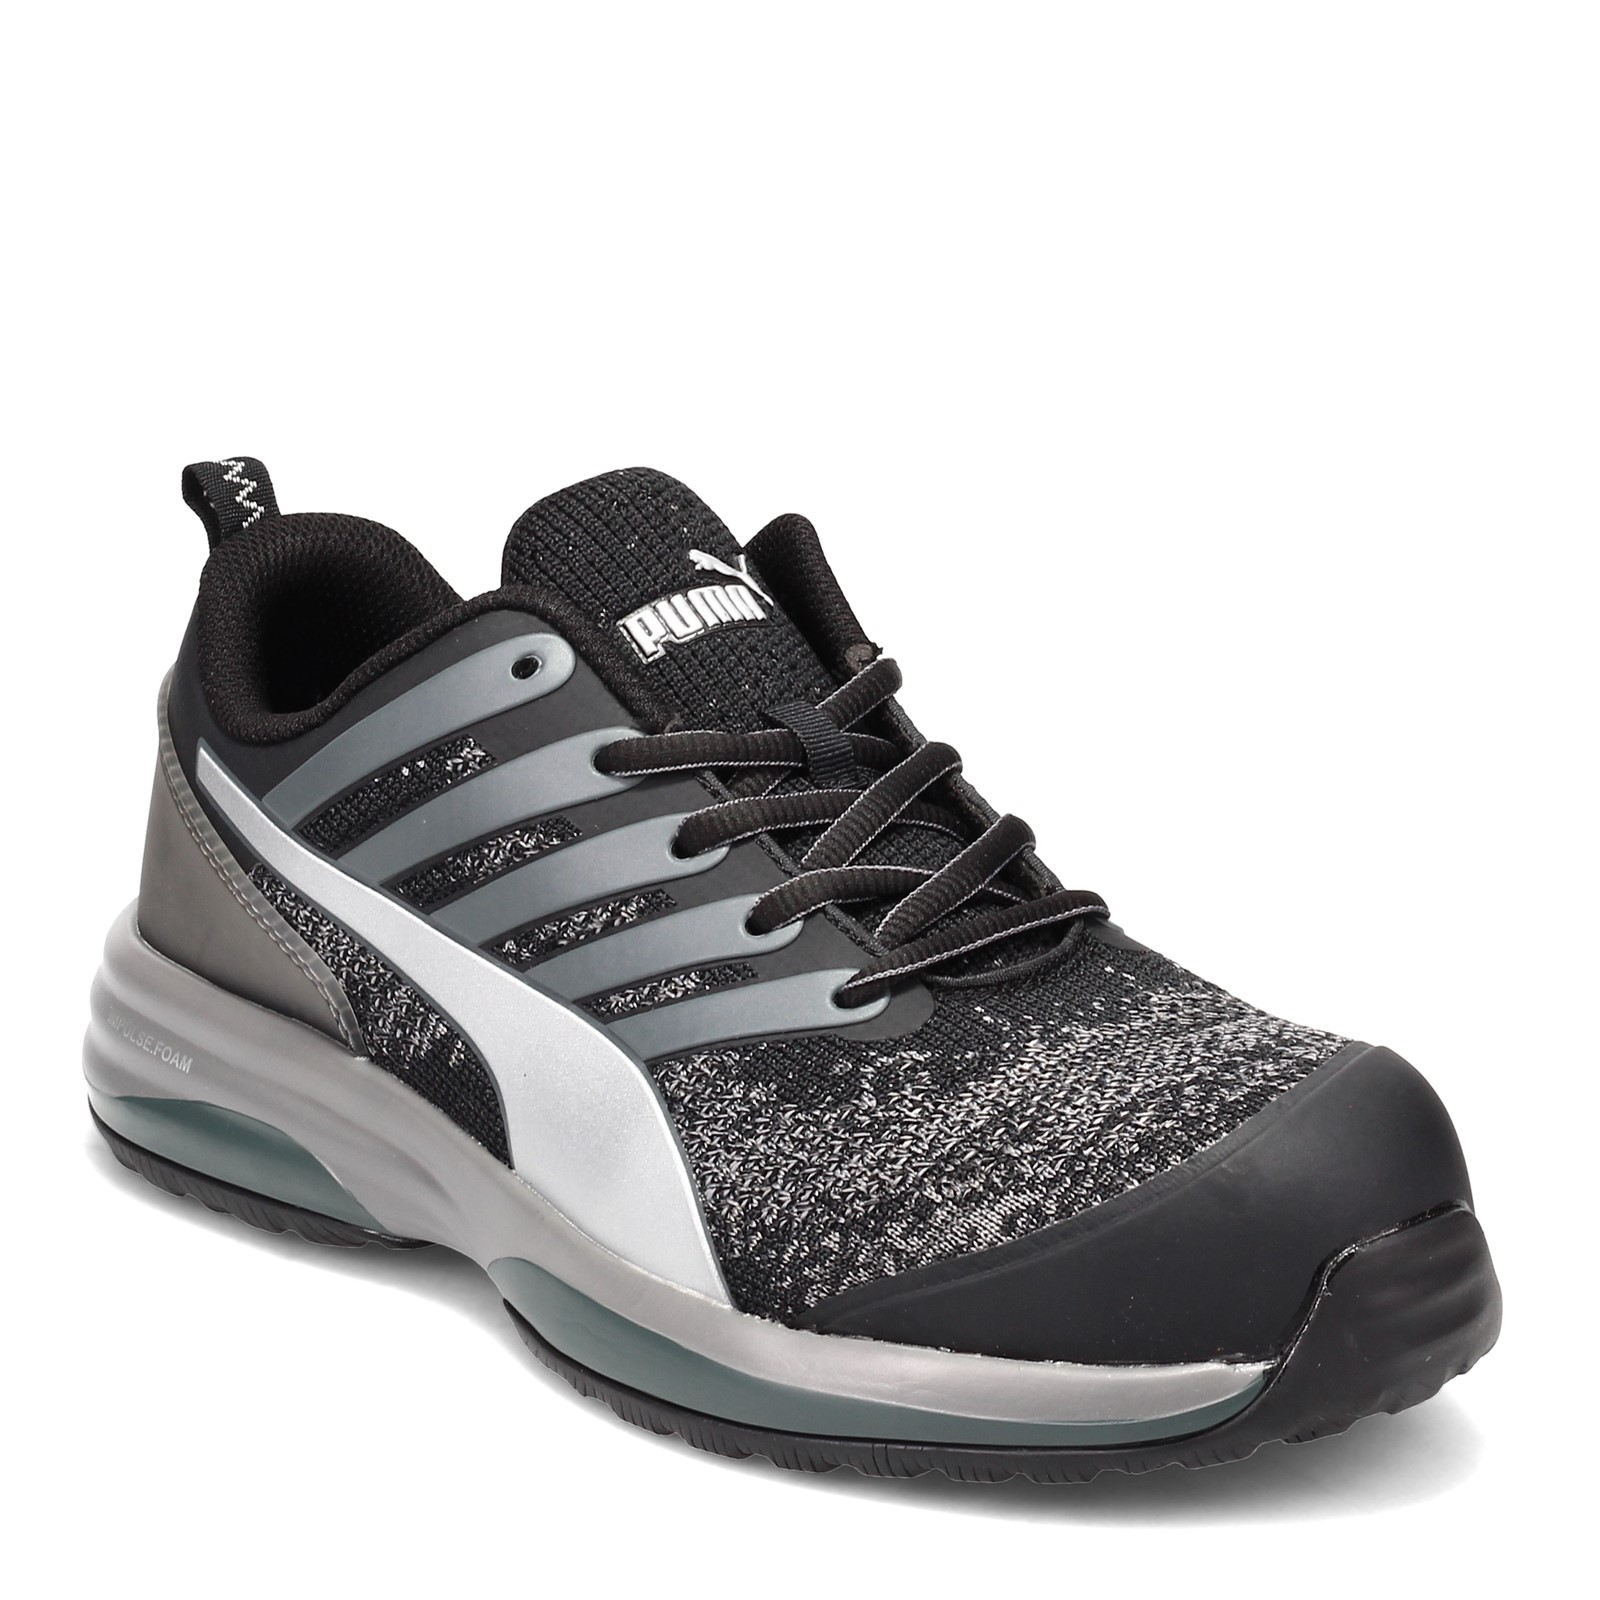 Men's Puma Safety, Charge Low Work Shoe